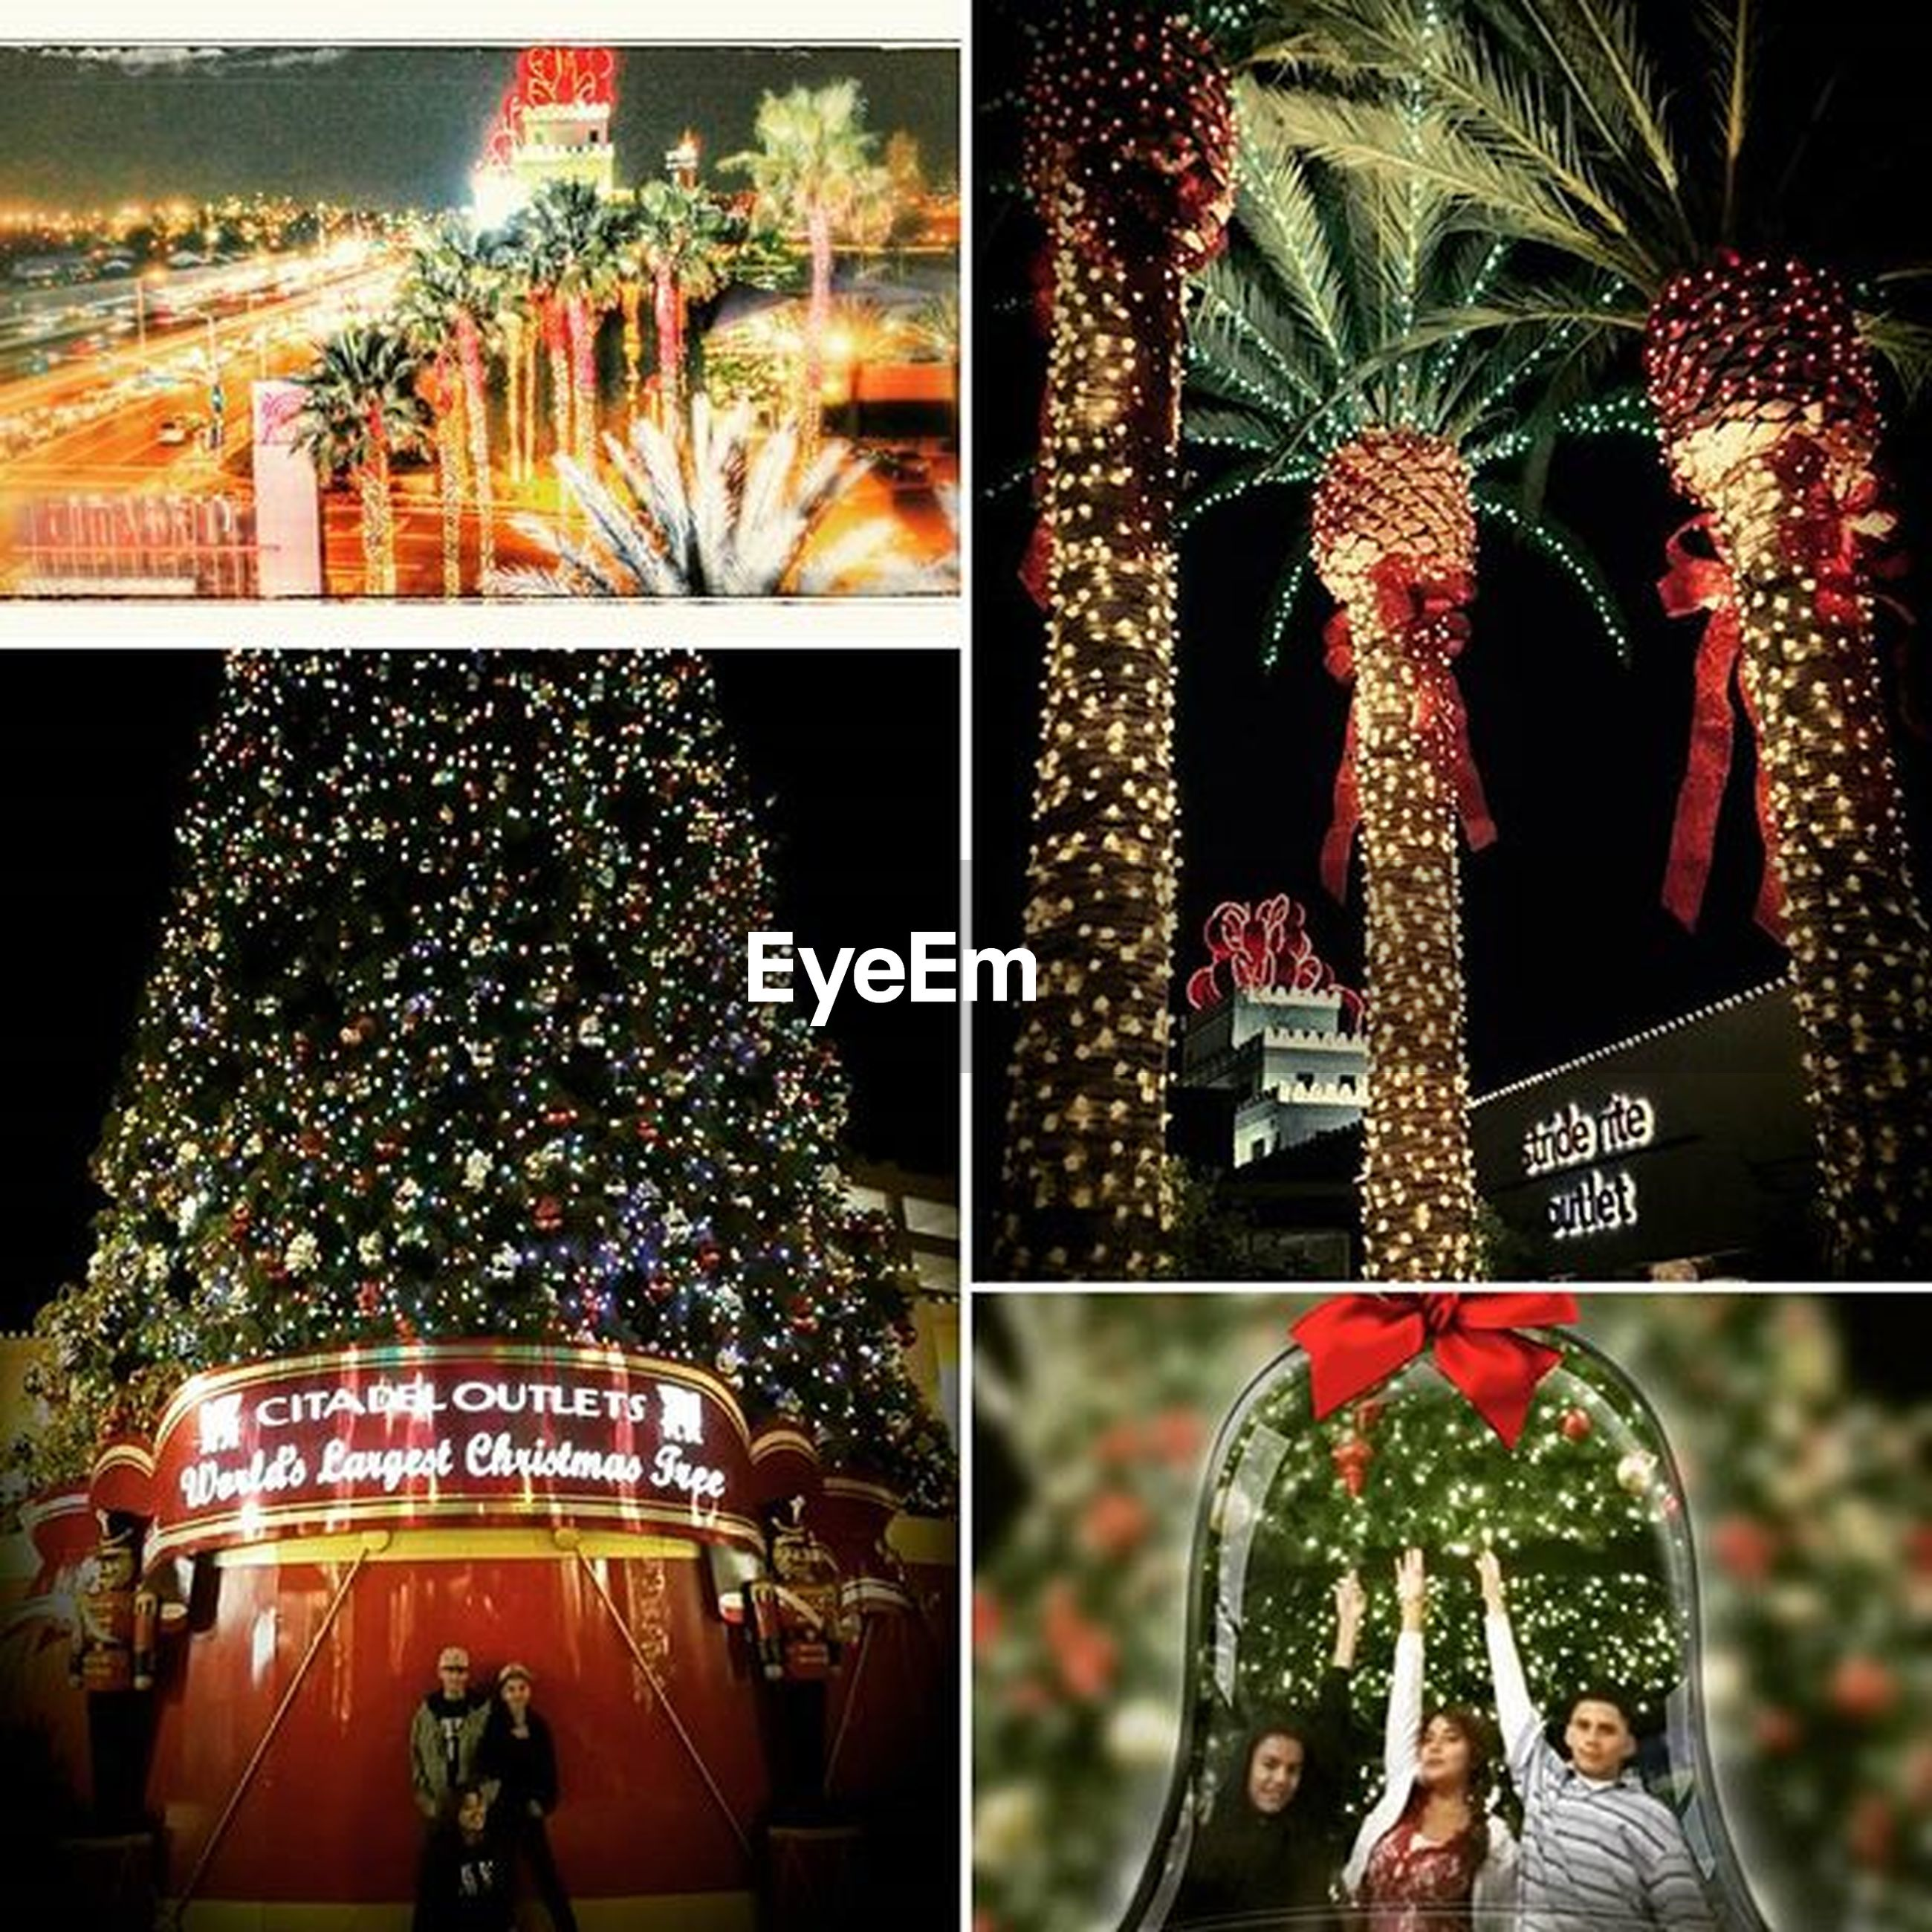 text, night, western script, illuminated, retail, non-western script, market, communication, display, for sale, market stall, celebration, men, hanging, large group of people, person, incidental people, tradition, outdoors